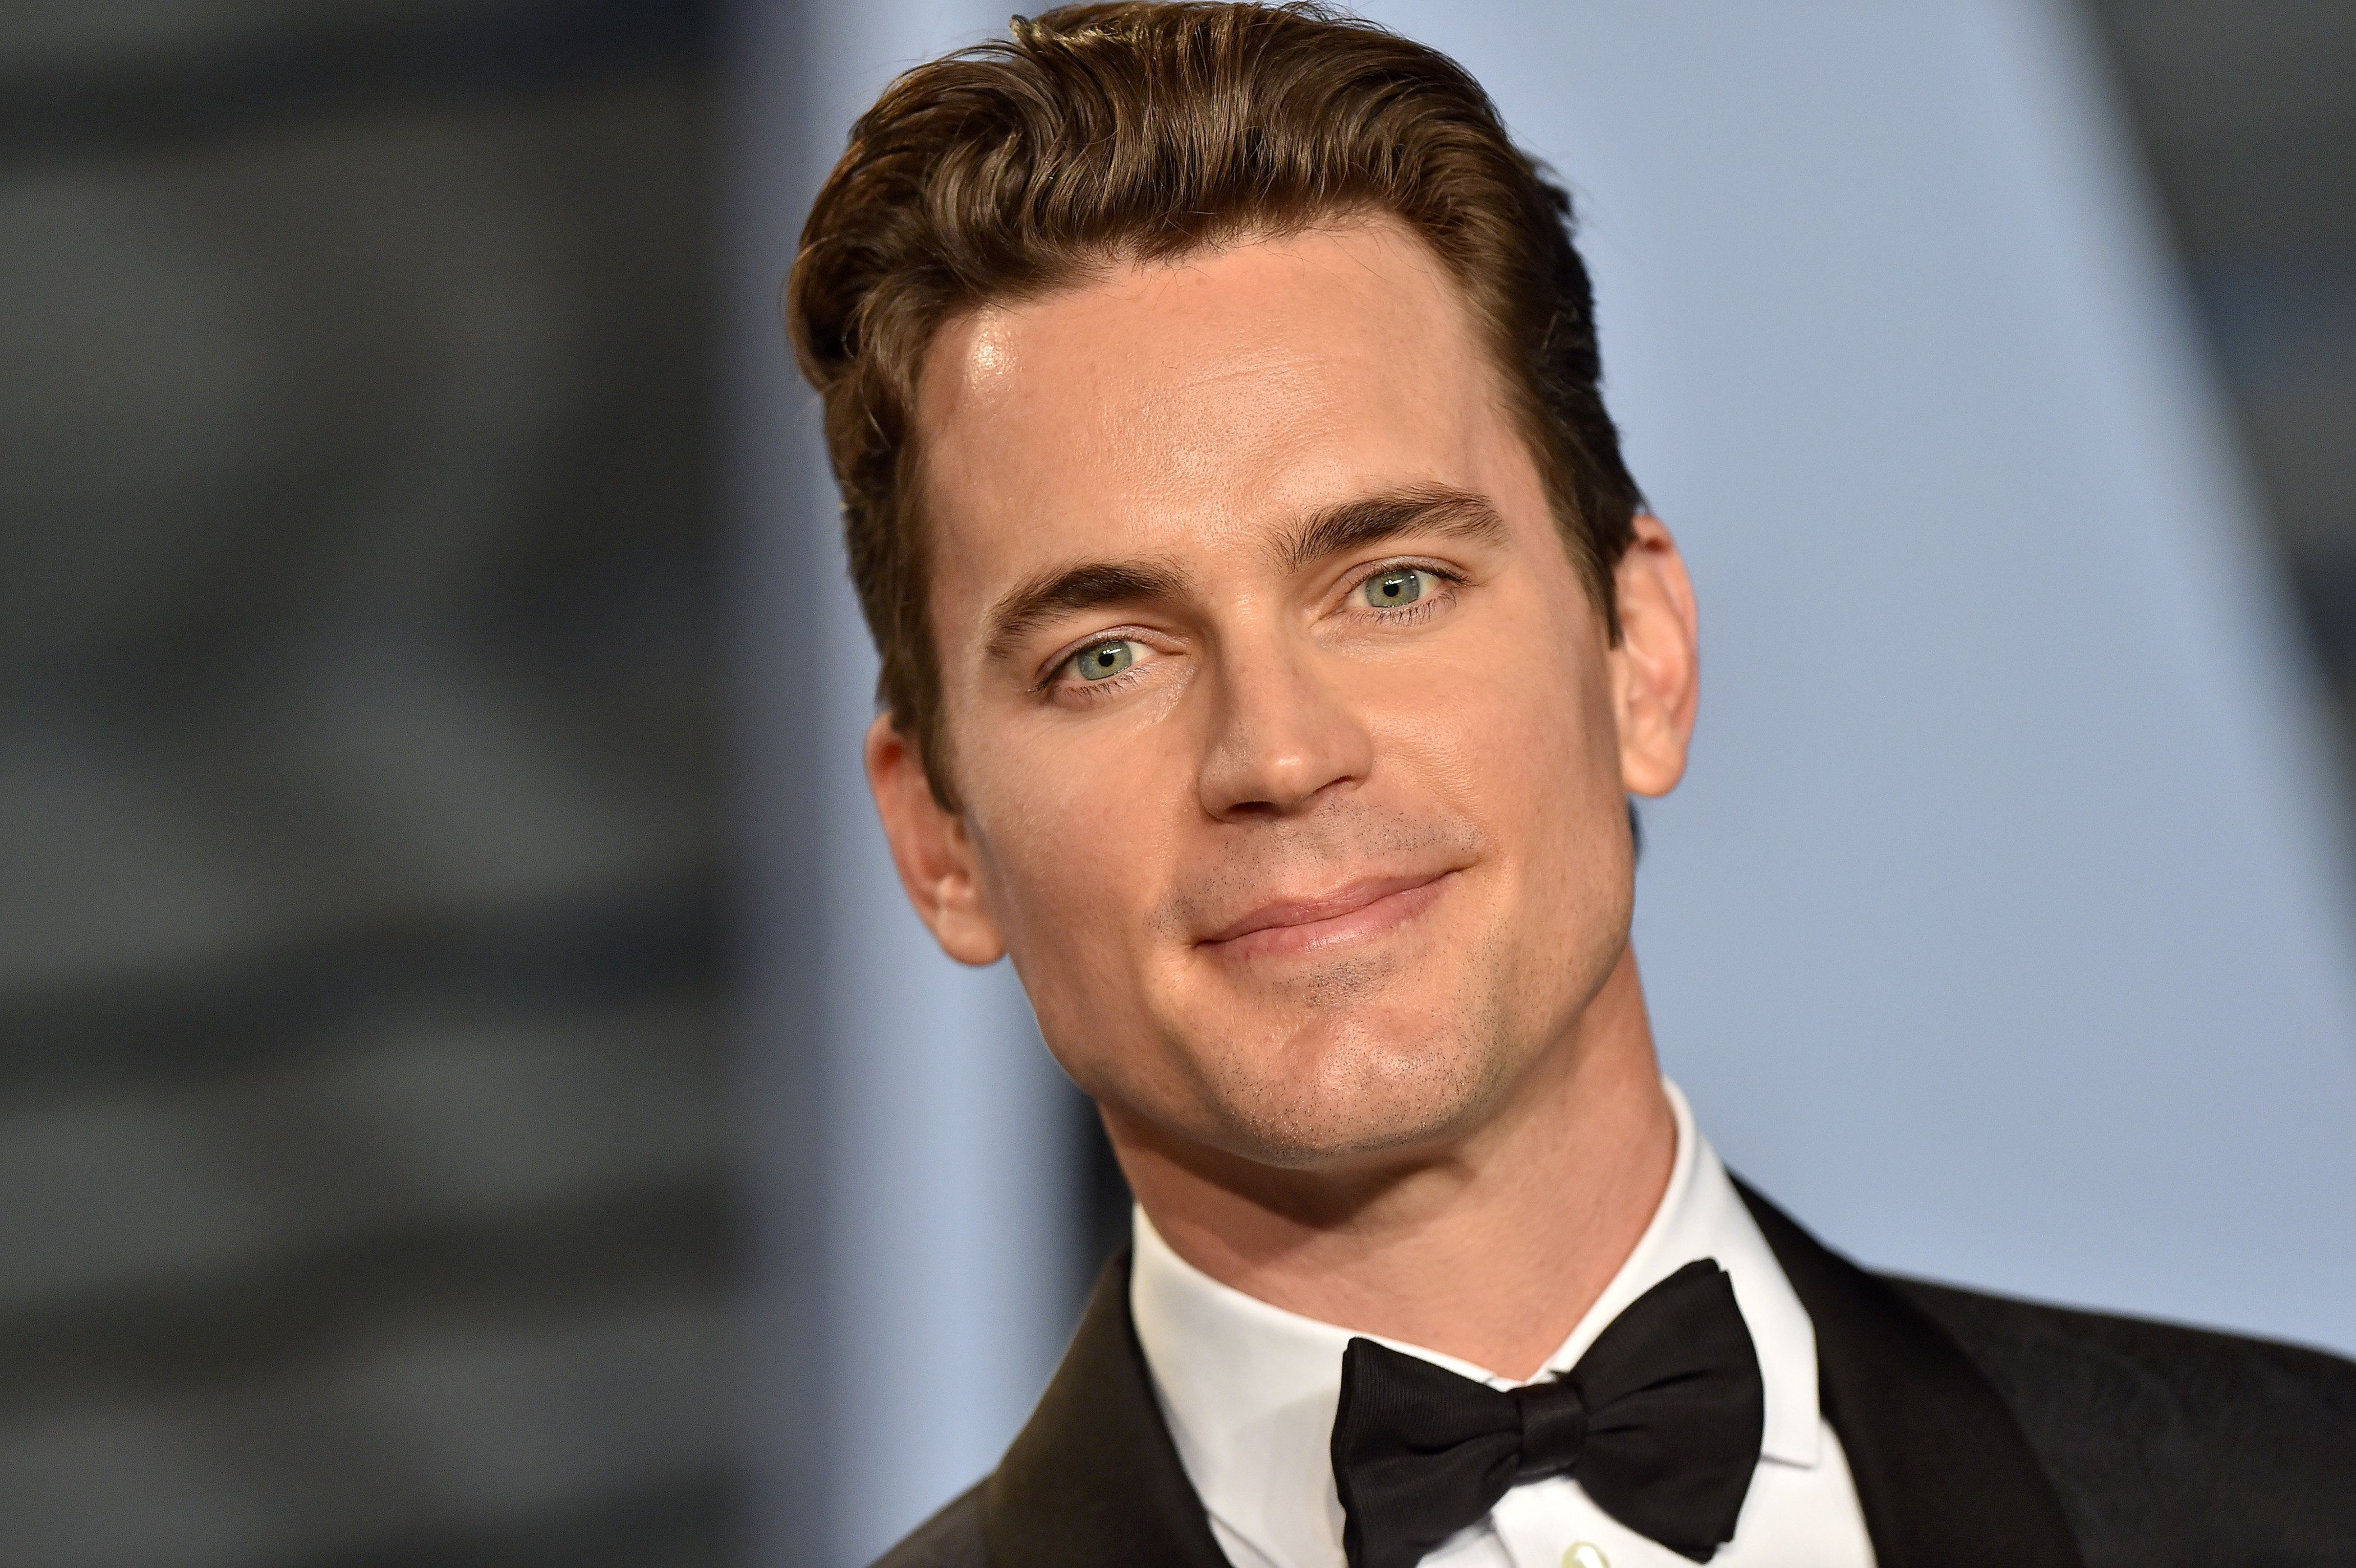 BEVERLY HILLS, CA - MARCH 04:  Actor Matt Bomer attends the 2018 Vanity Fair Oscar Party hosted by Radhika Jones at Wallis Annenberg Center for the Performing Arts on March 4, 2018 in Beverly Hills, California.  (Photo by Axelle/Bauer-Griffin/FilmMagic)